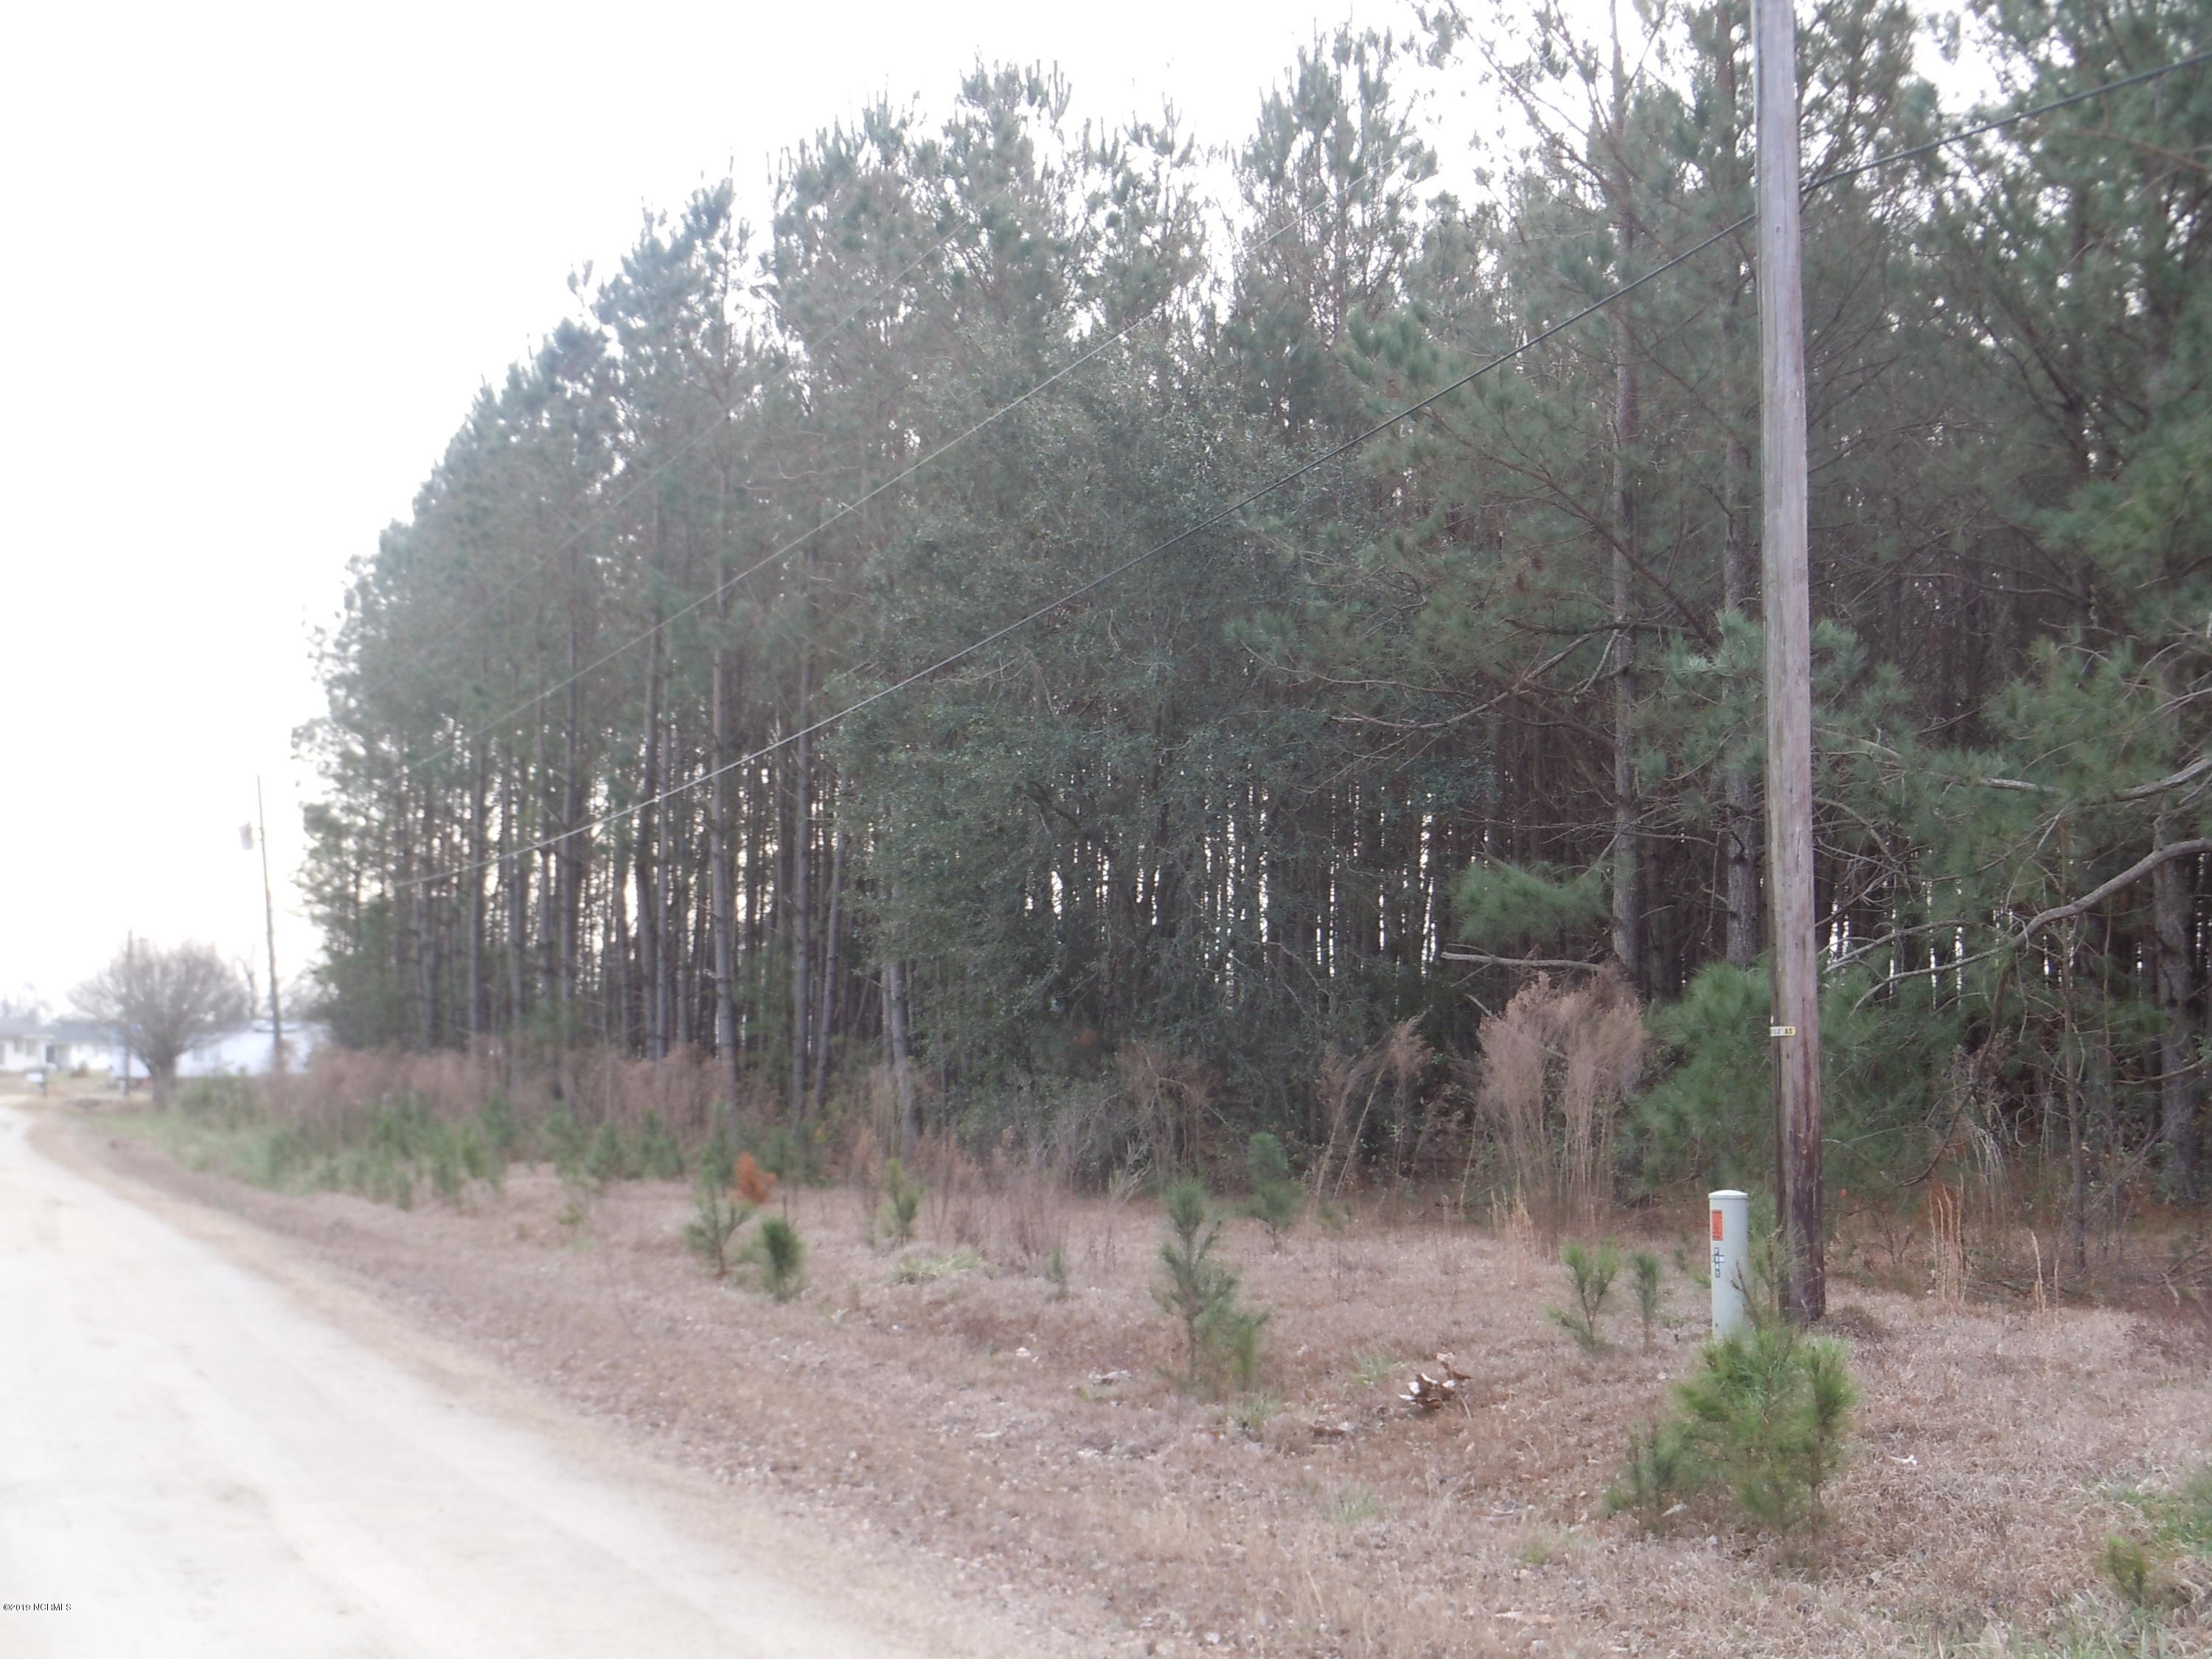 140 Floyd Street, Whiteville, North Carolina 28472, ,Residential land,For sale,Floyd,100150886